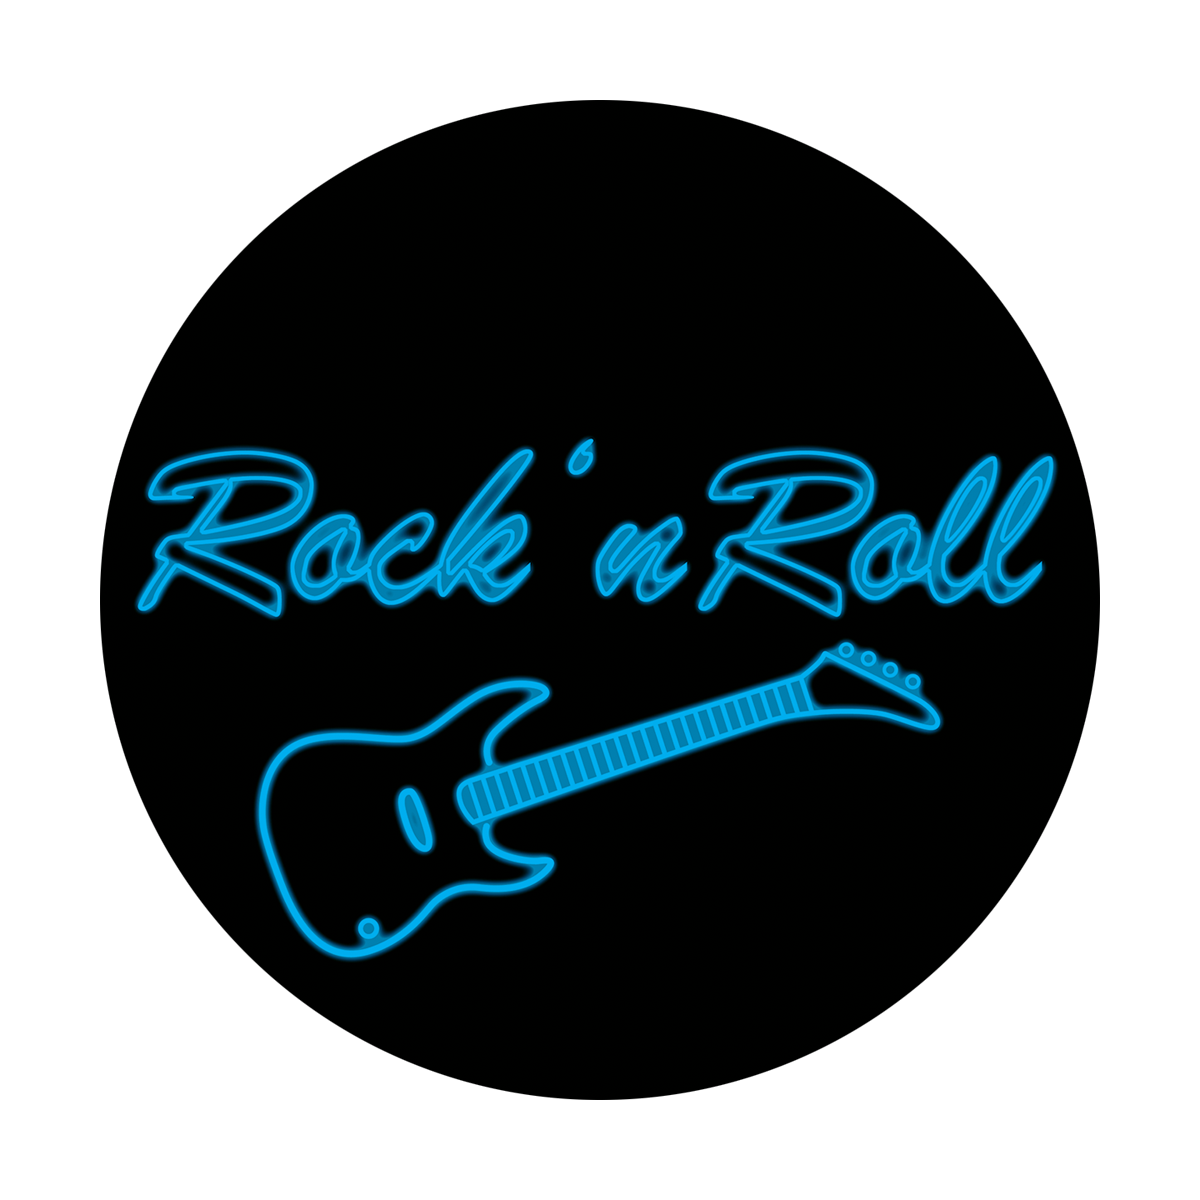 Rencontres rock n roll